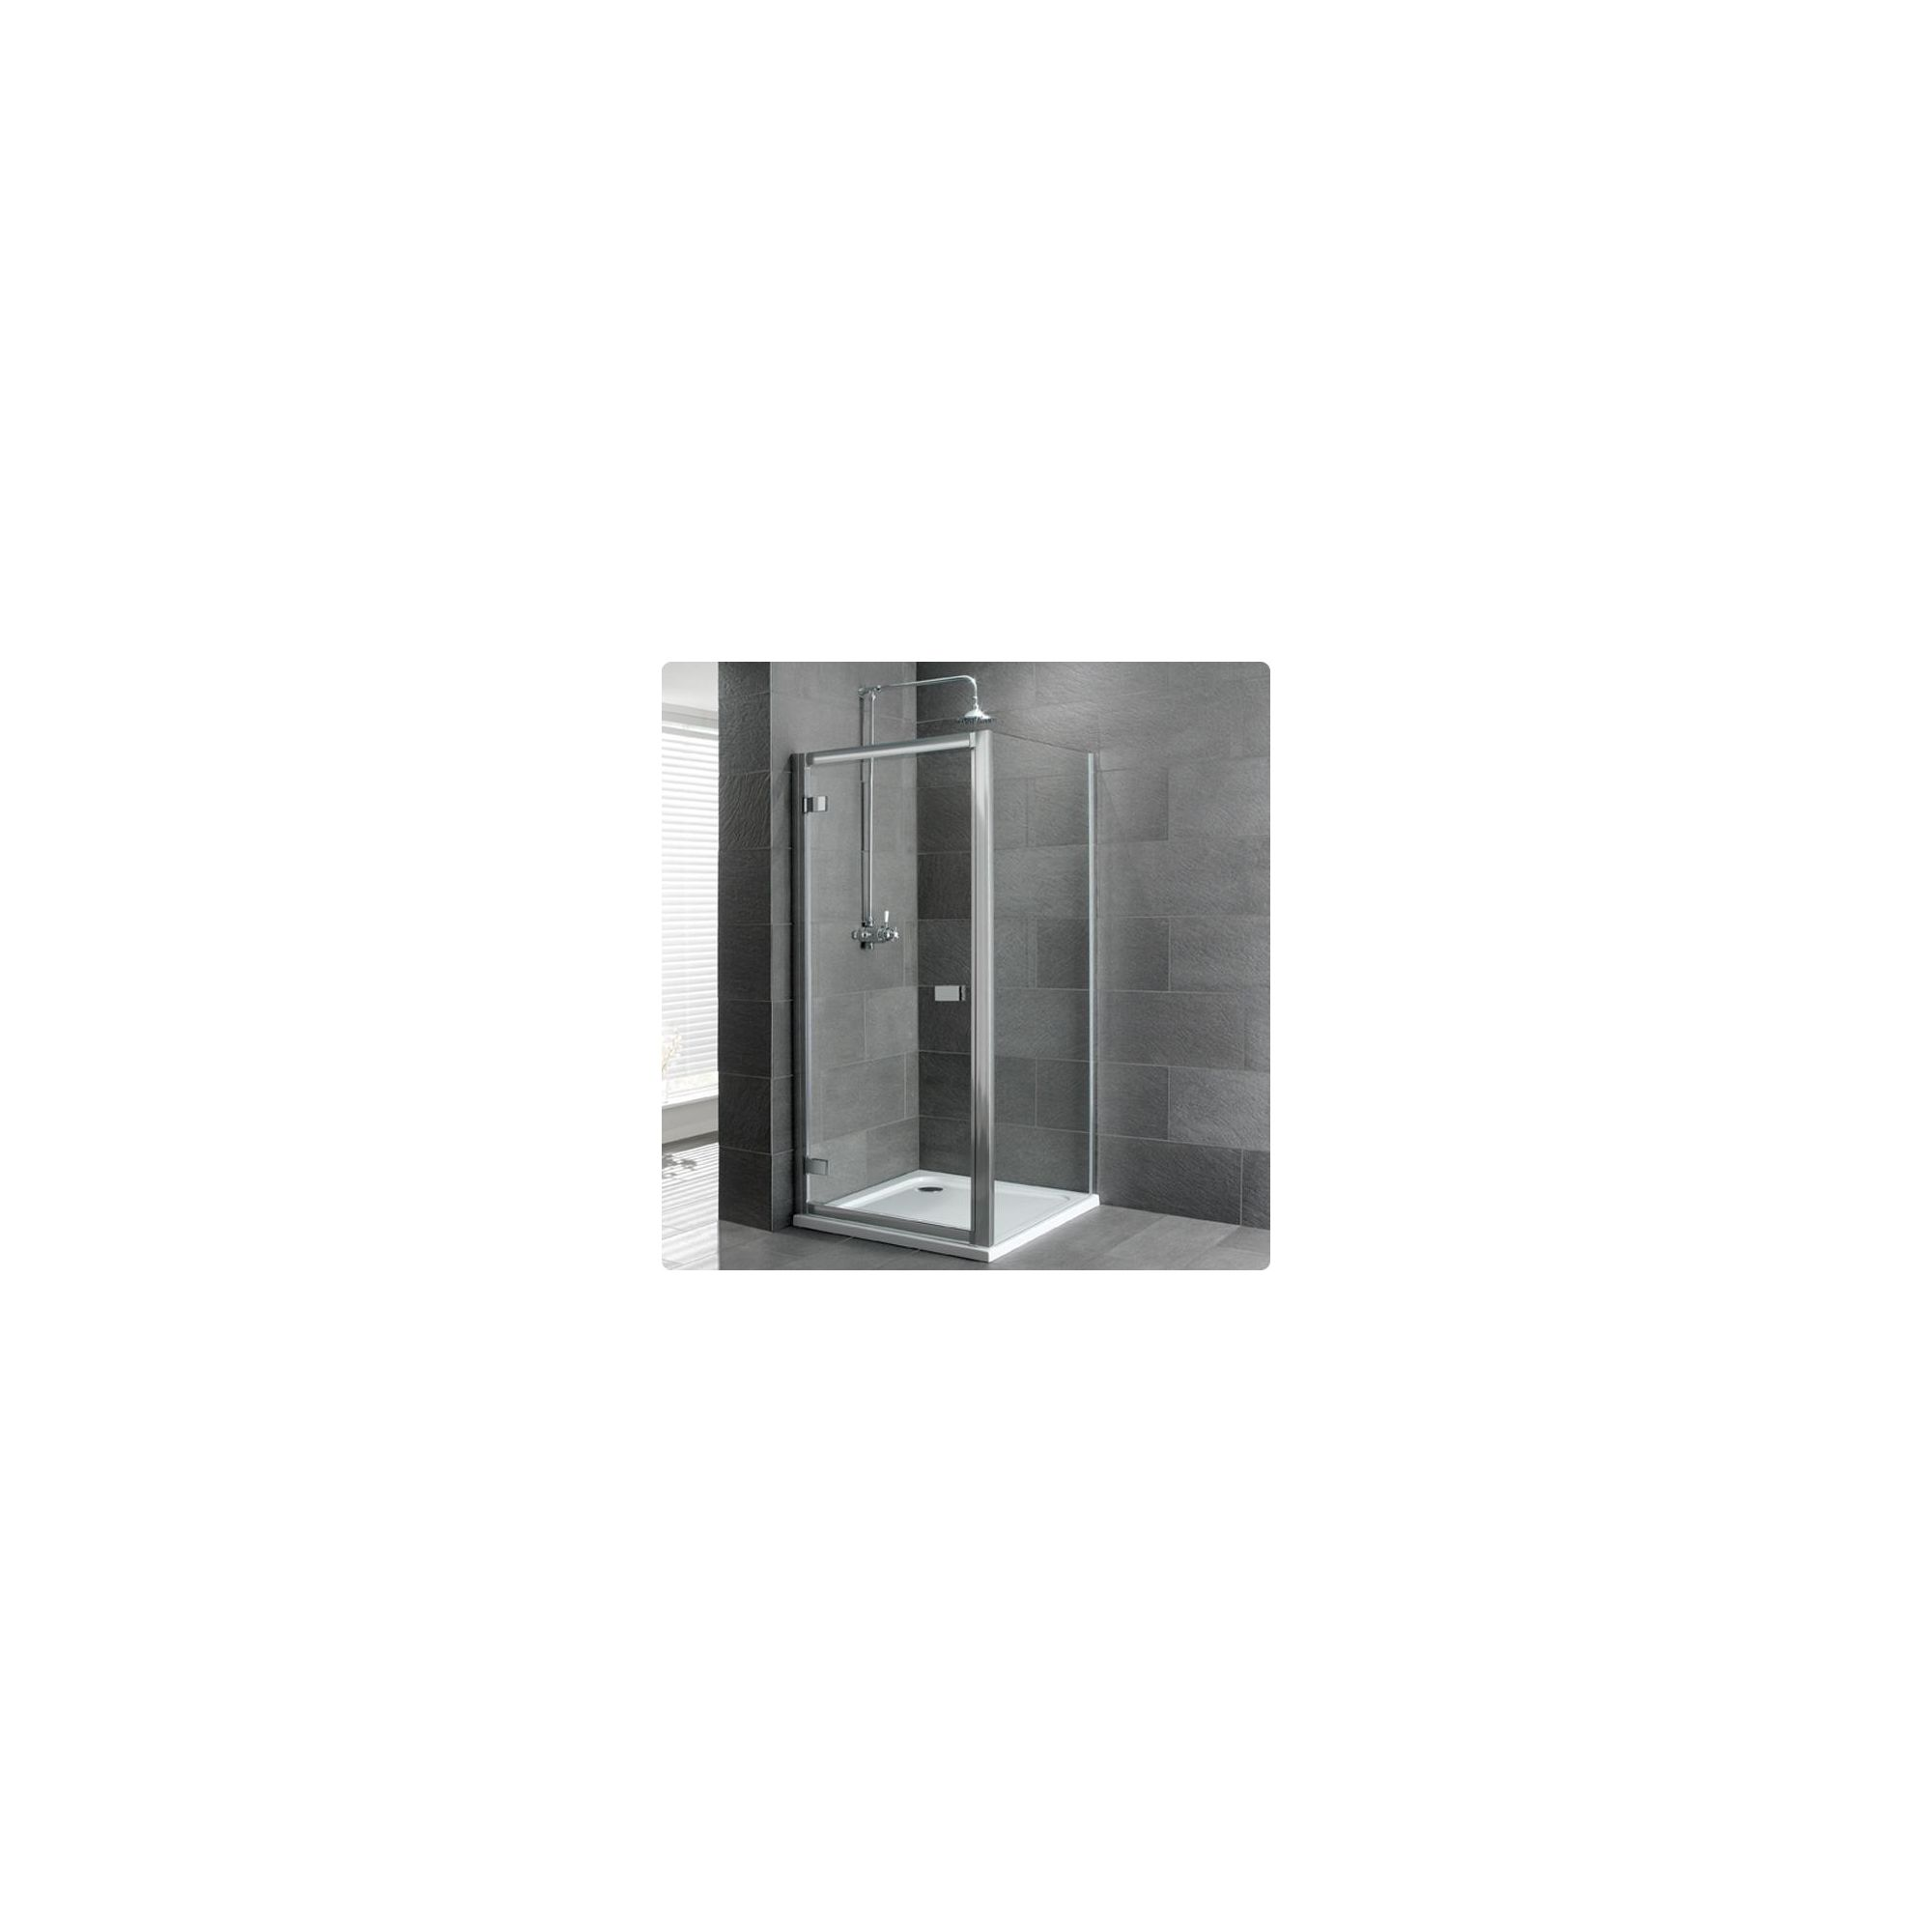 Duchy Select Silver Hinged Door Shower Enclosure, 1000mm x 760mm, Standard Tray, 6mm Glass at Tescos Direct